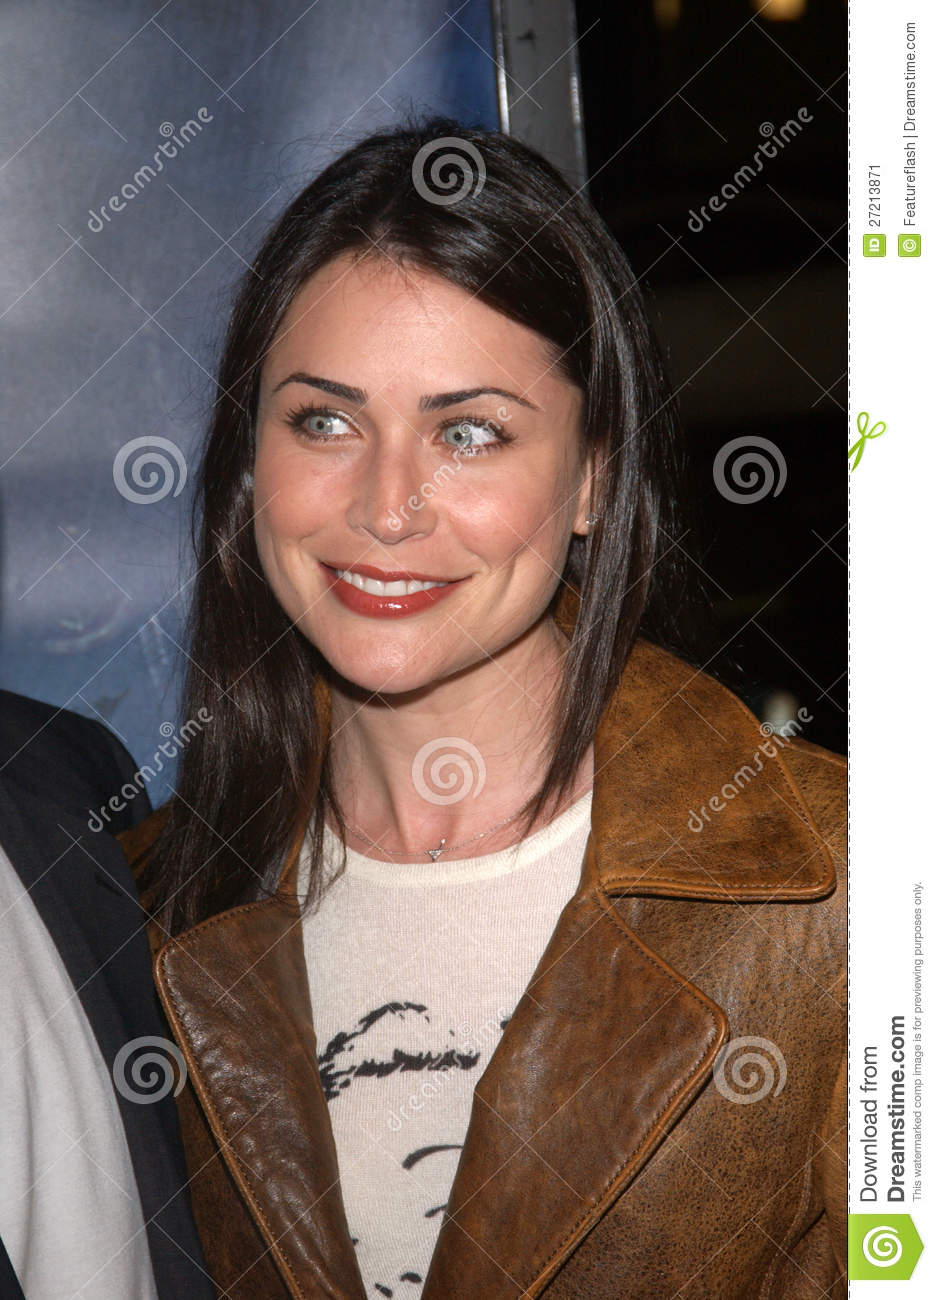 rena sofer 2015rena sofer twin sitters, rena sofer friends, rena sofer bones, rena sofer wiki, rena sofer fansite, rena sofer height, rena sofer tumblr, rena sofer instagram, rena sofer once upon a time, rena sofer, rena sofer imdb, rena sofer ncis, rena sofer seinfeld, rena sofer 2015, rena sofer melrose place, rena sofer net worth, rena sofer husband, rena sofer eyes, rena sofer measurements, rena sofer quando si ama